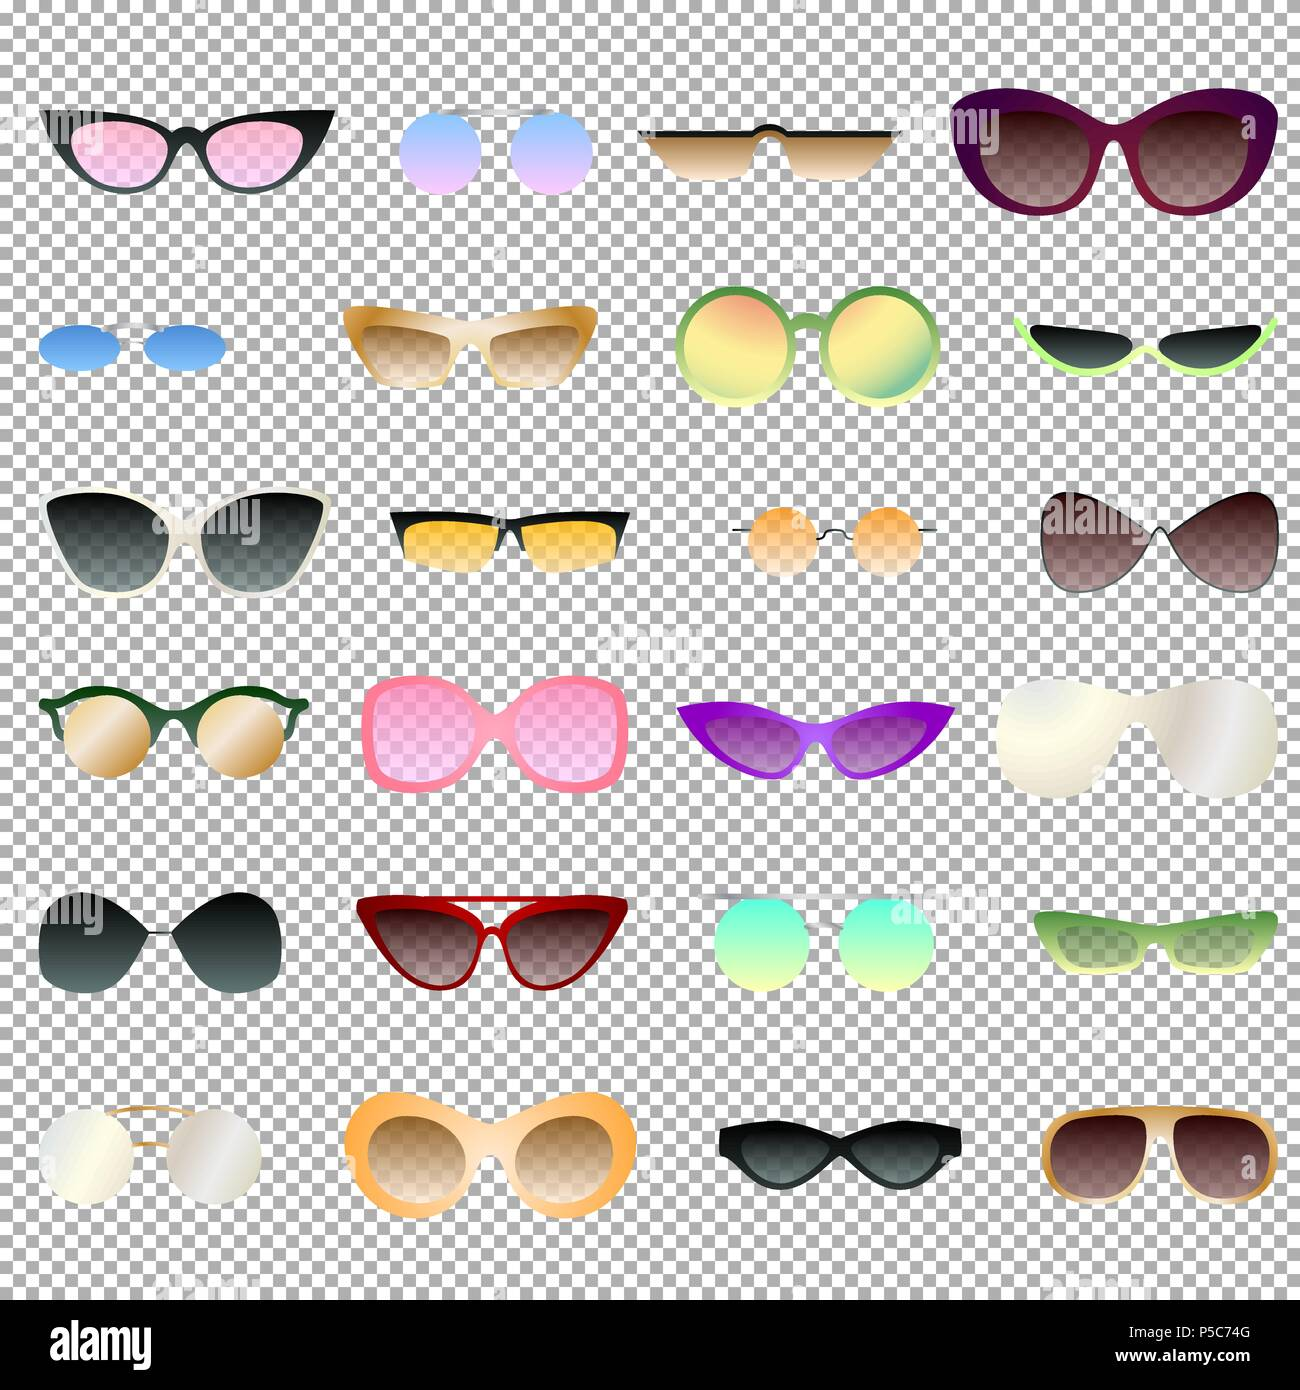 f373b2b8eac Transparent and opaque eyewear set for clipart